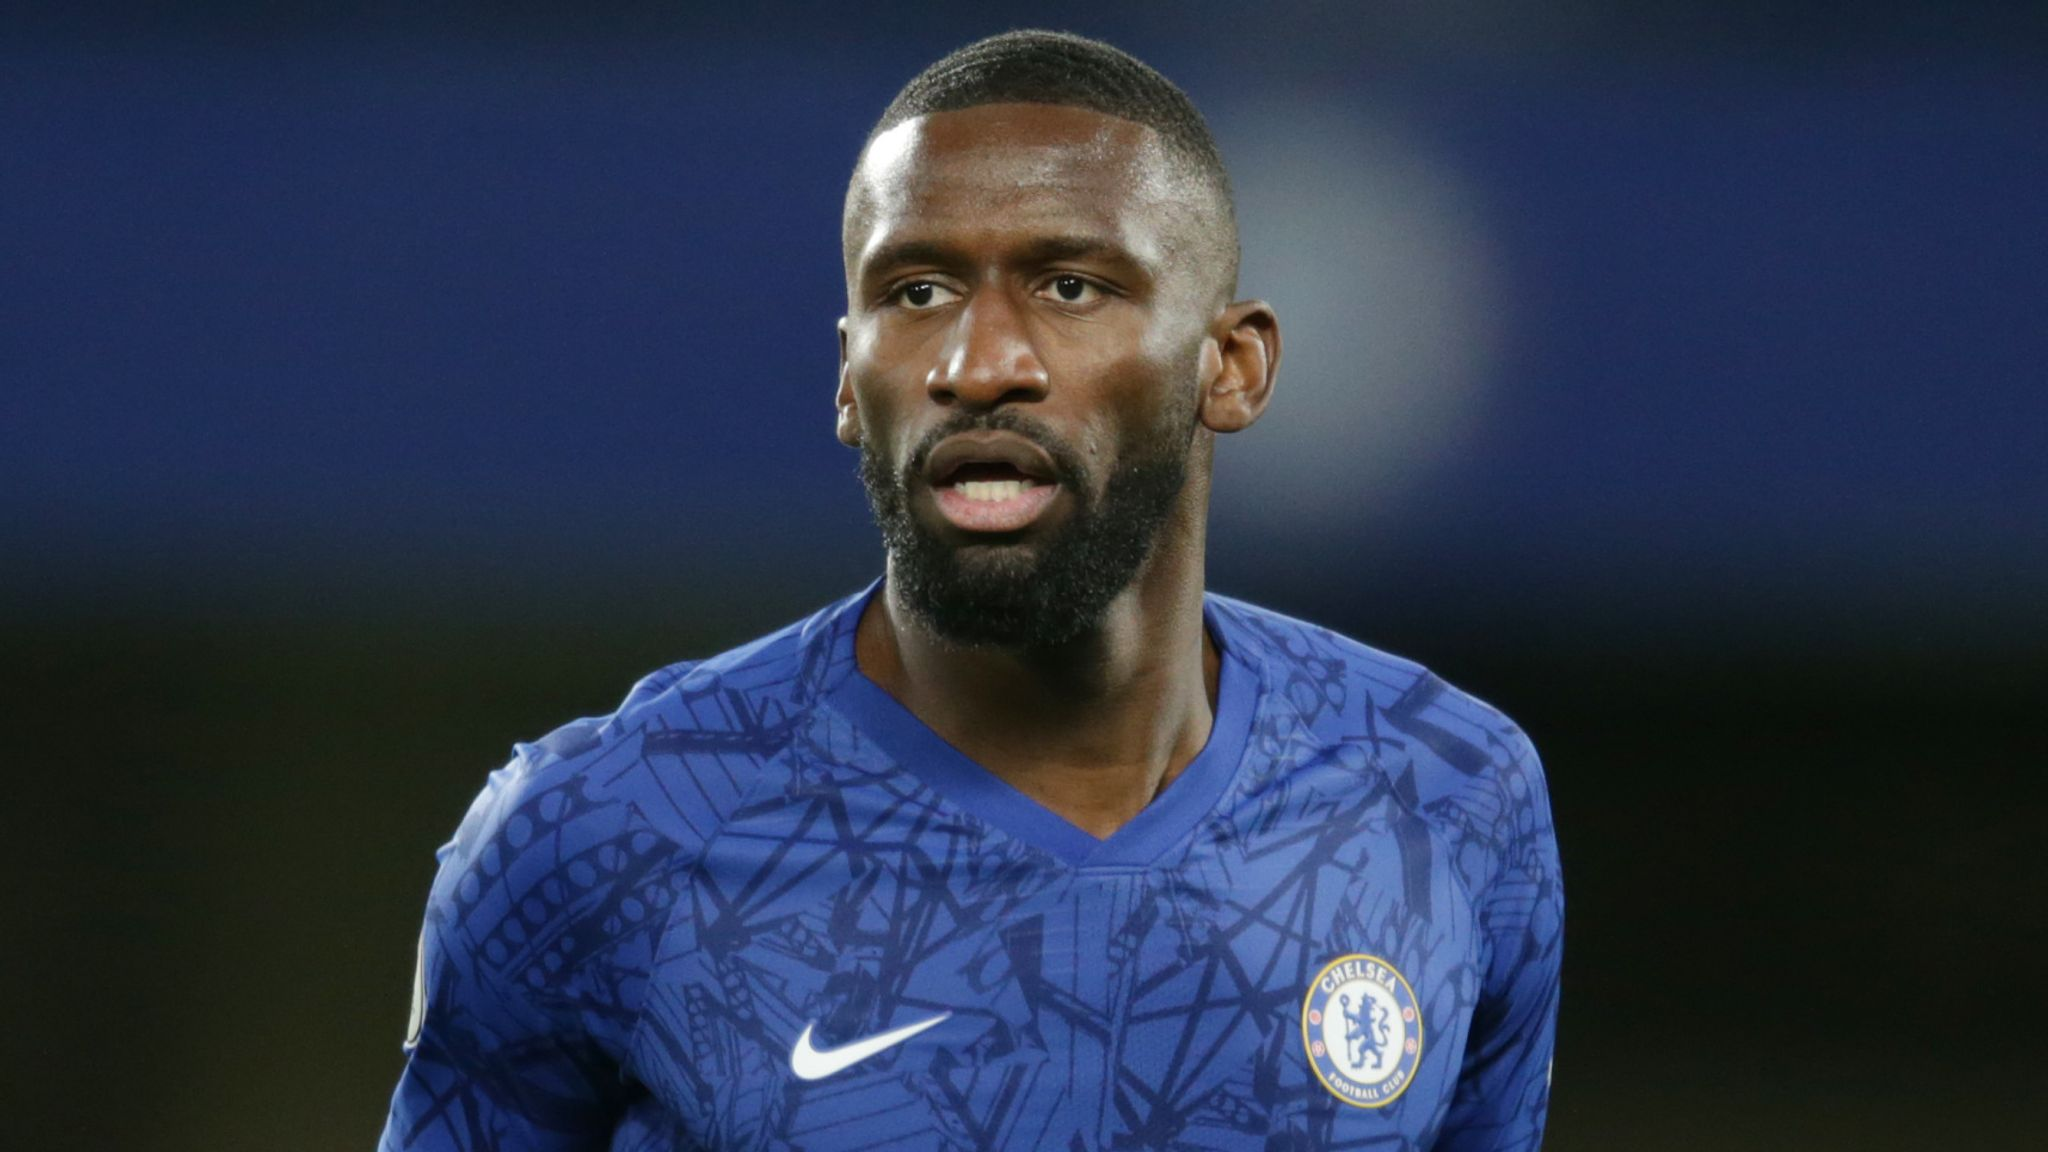 Antonio Rudiger says Liverpool should be awarded Premier League ...